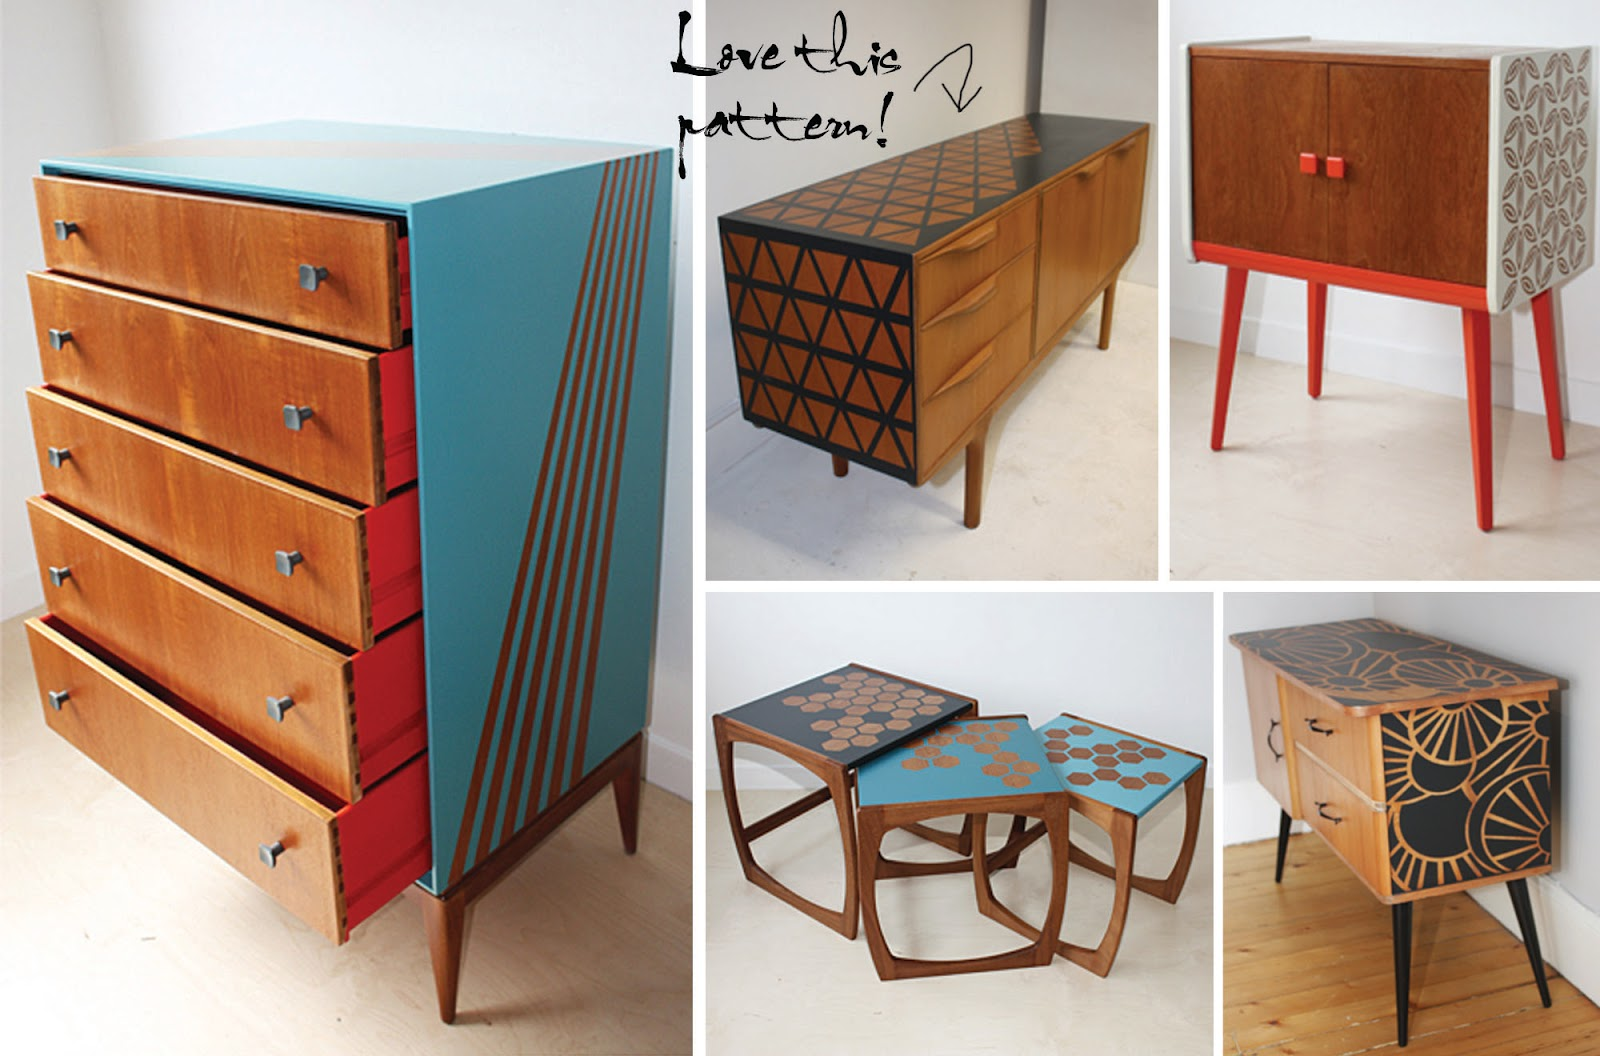 75 best images about Upcycled furniture on Pinterest  Hand